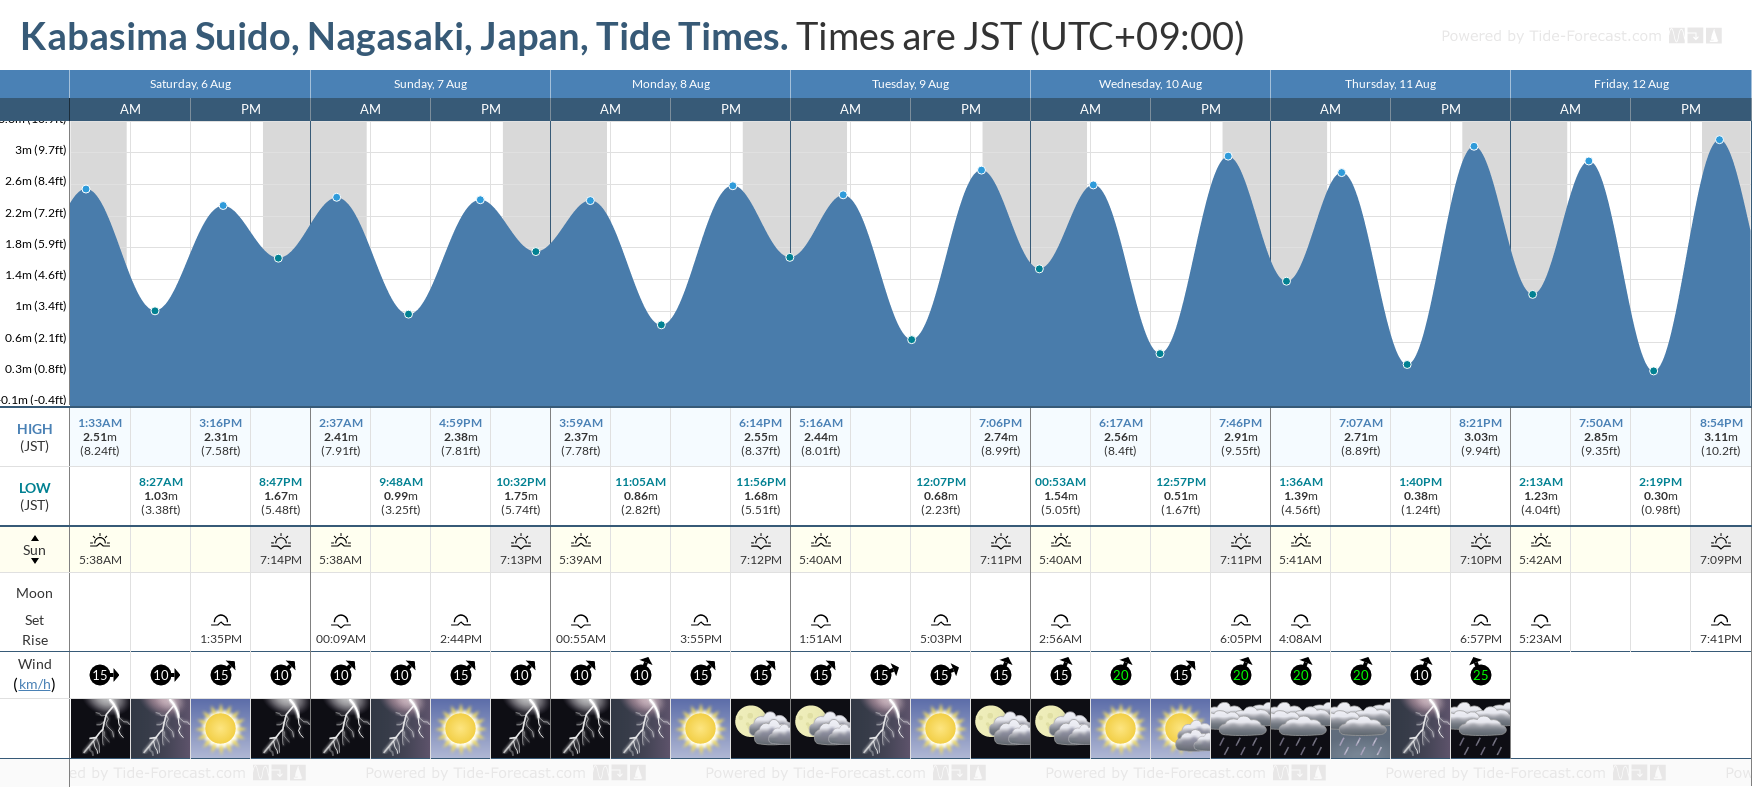 Kabasima Suido, Nagasaki, Japan Tide Chart including high and low tide tide times for the next 7 days